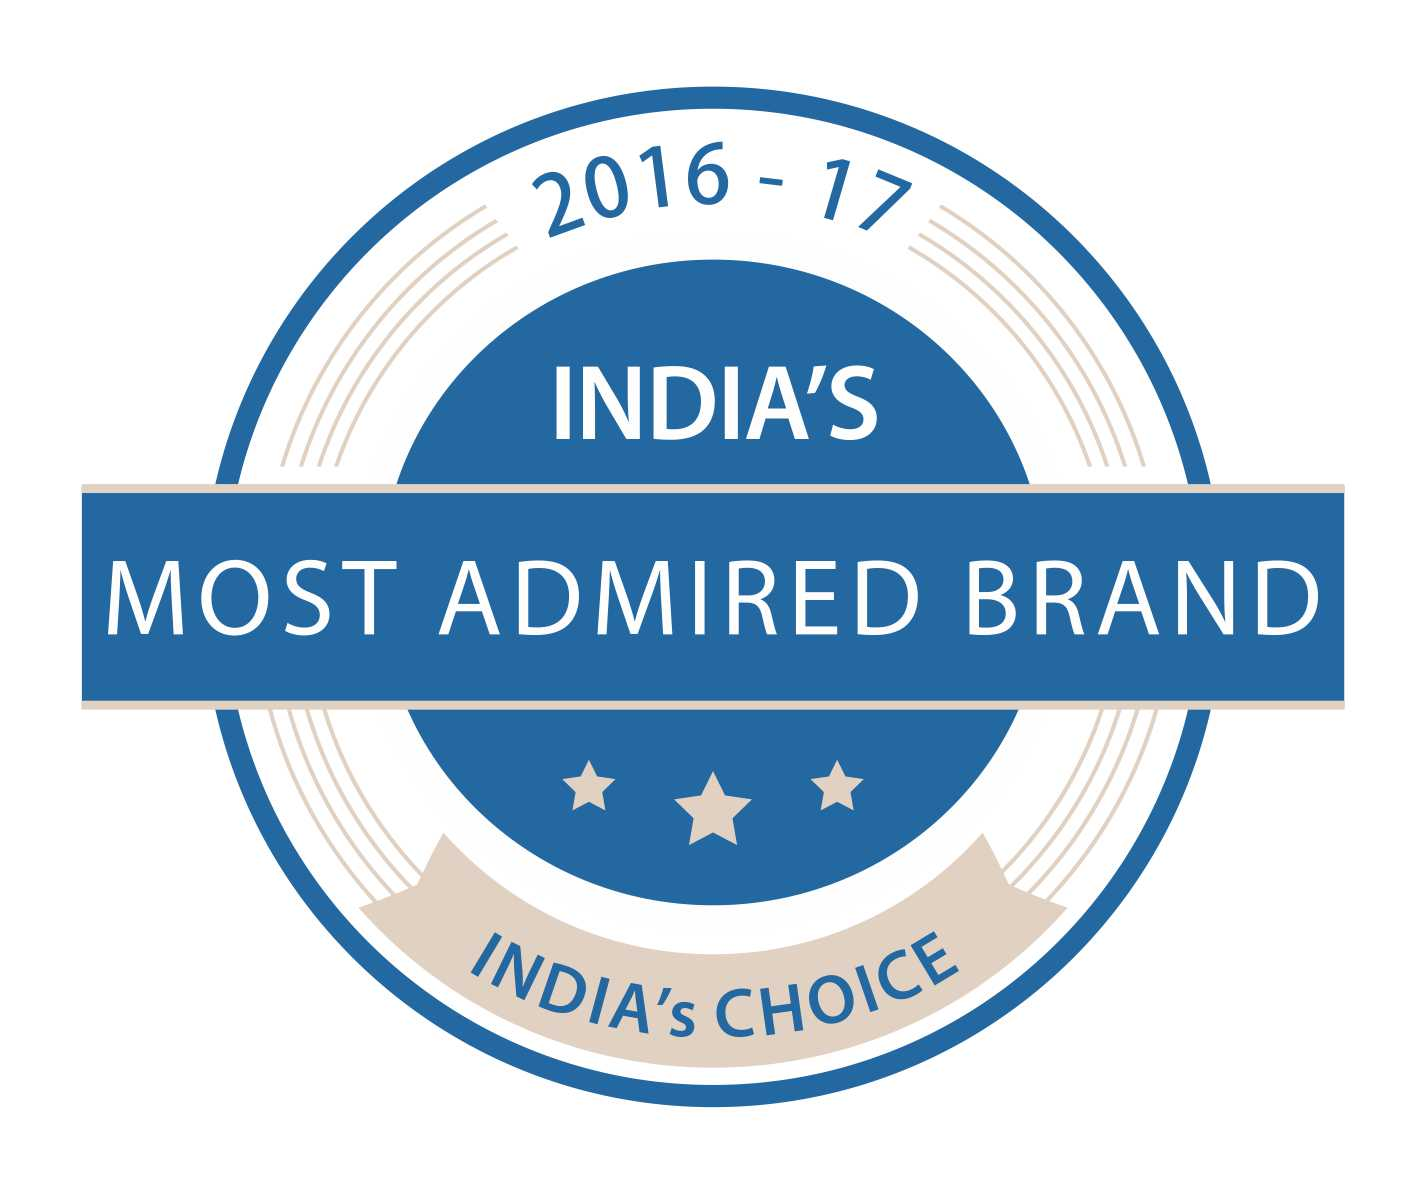 Indias-Most-Admired-Brand-16-17